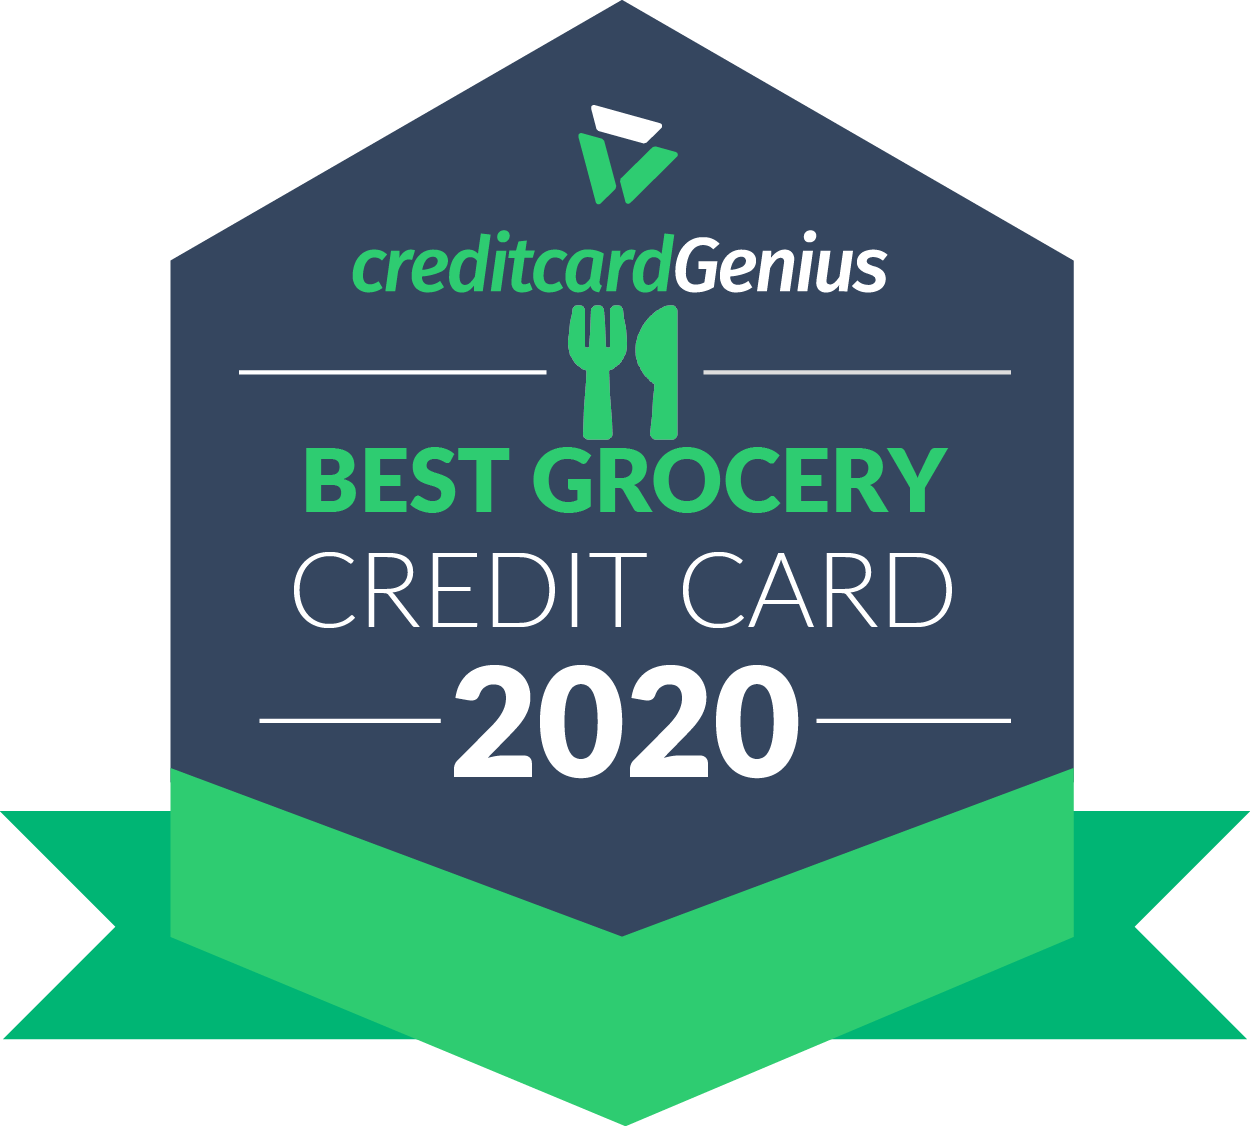 Best grocery credit card for 2020 award seal